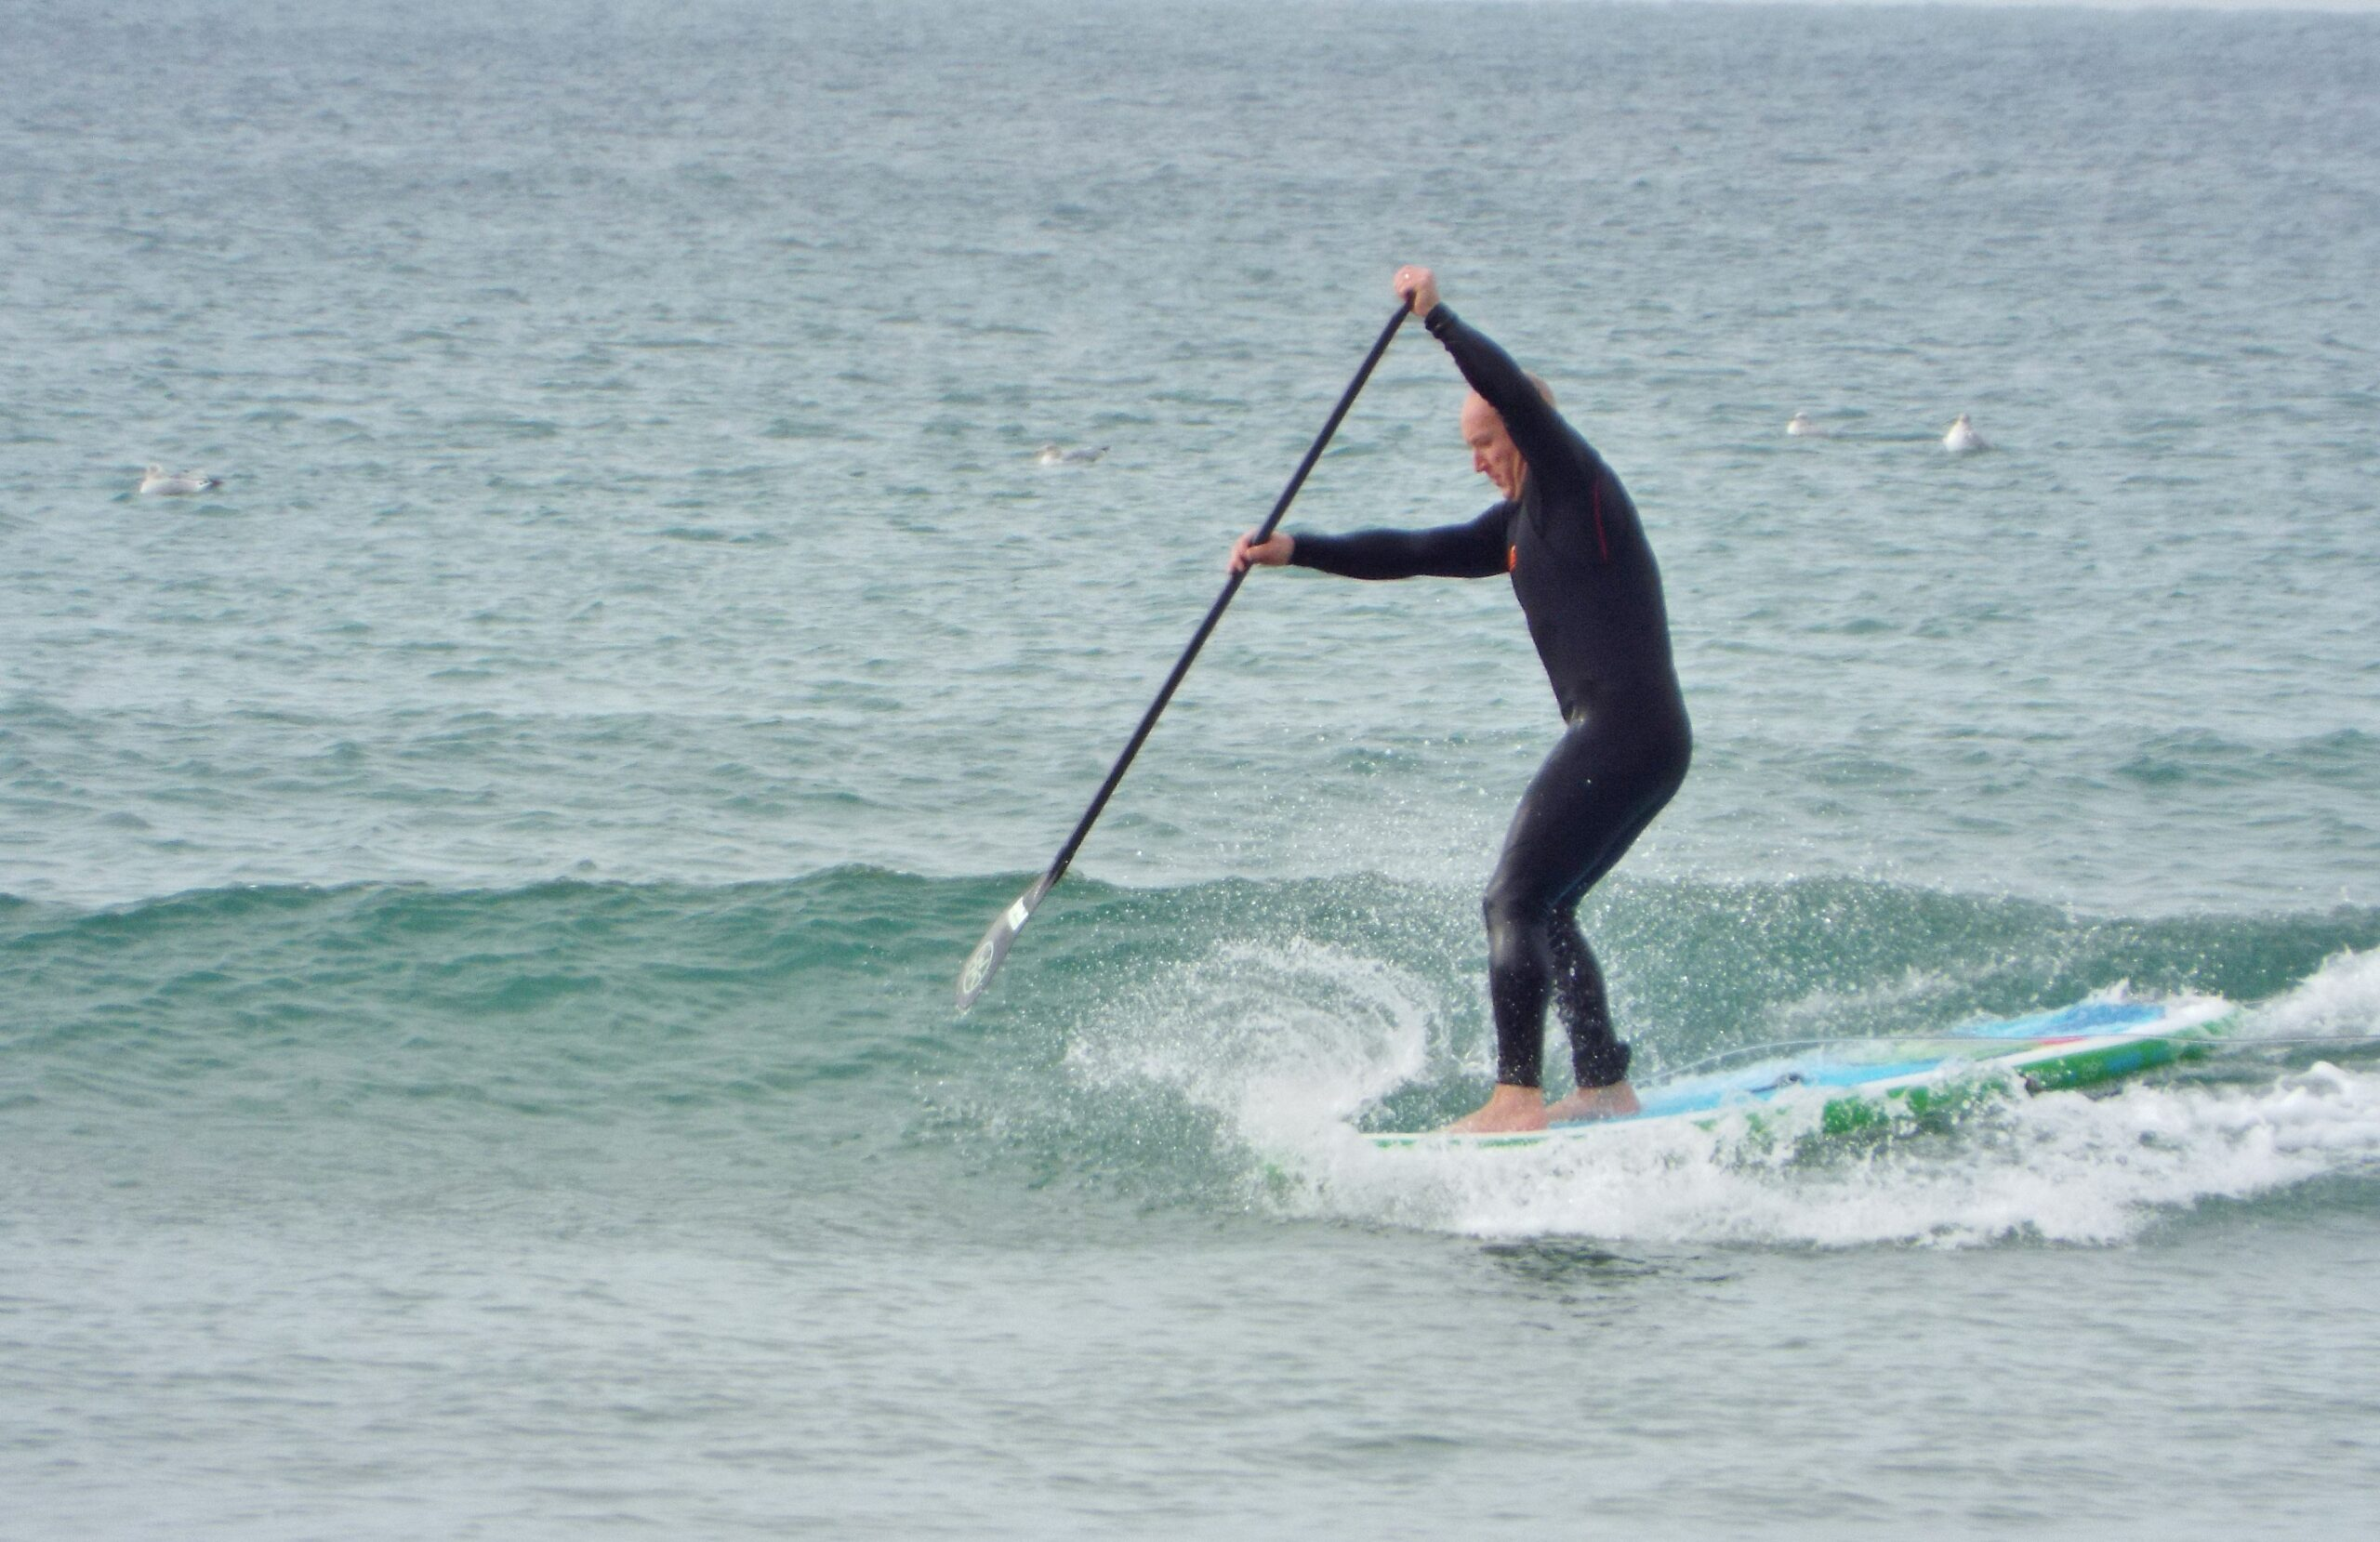 SUP surfing to SUP foiling - performance season is here! #2